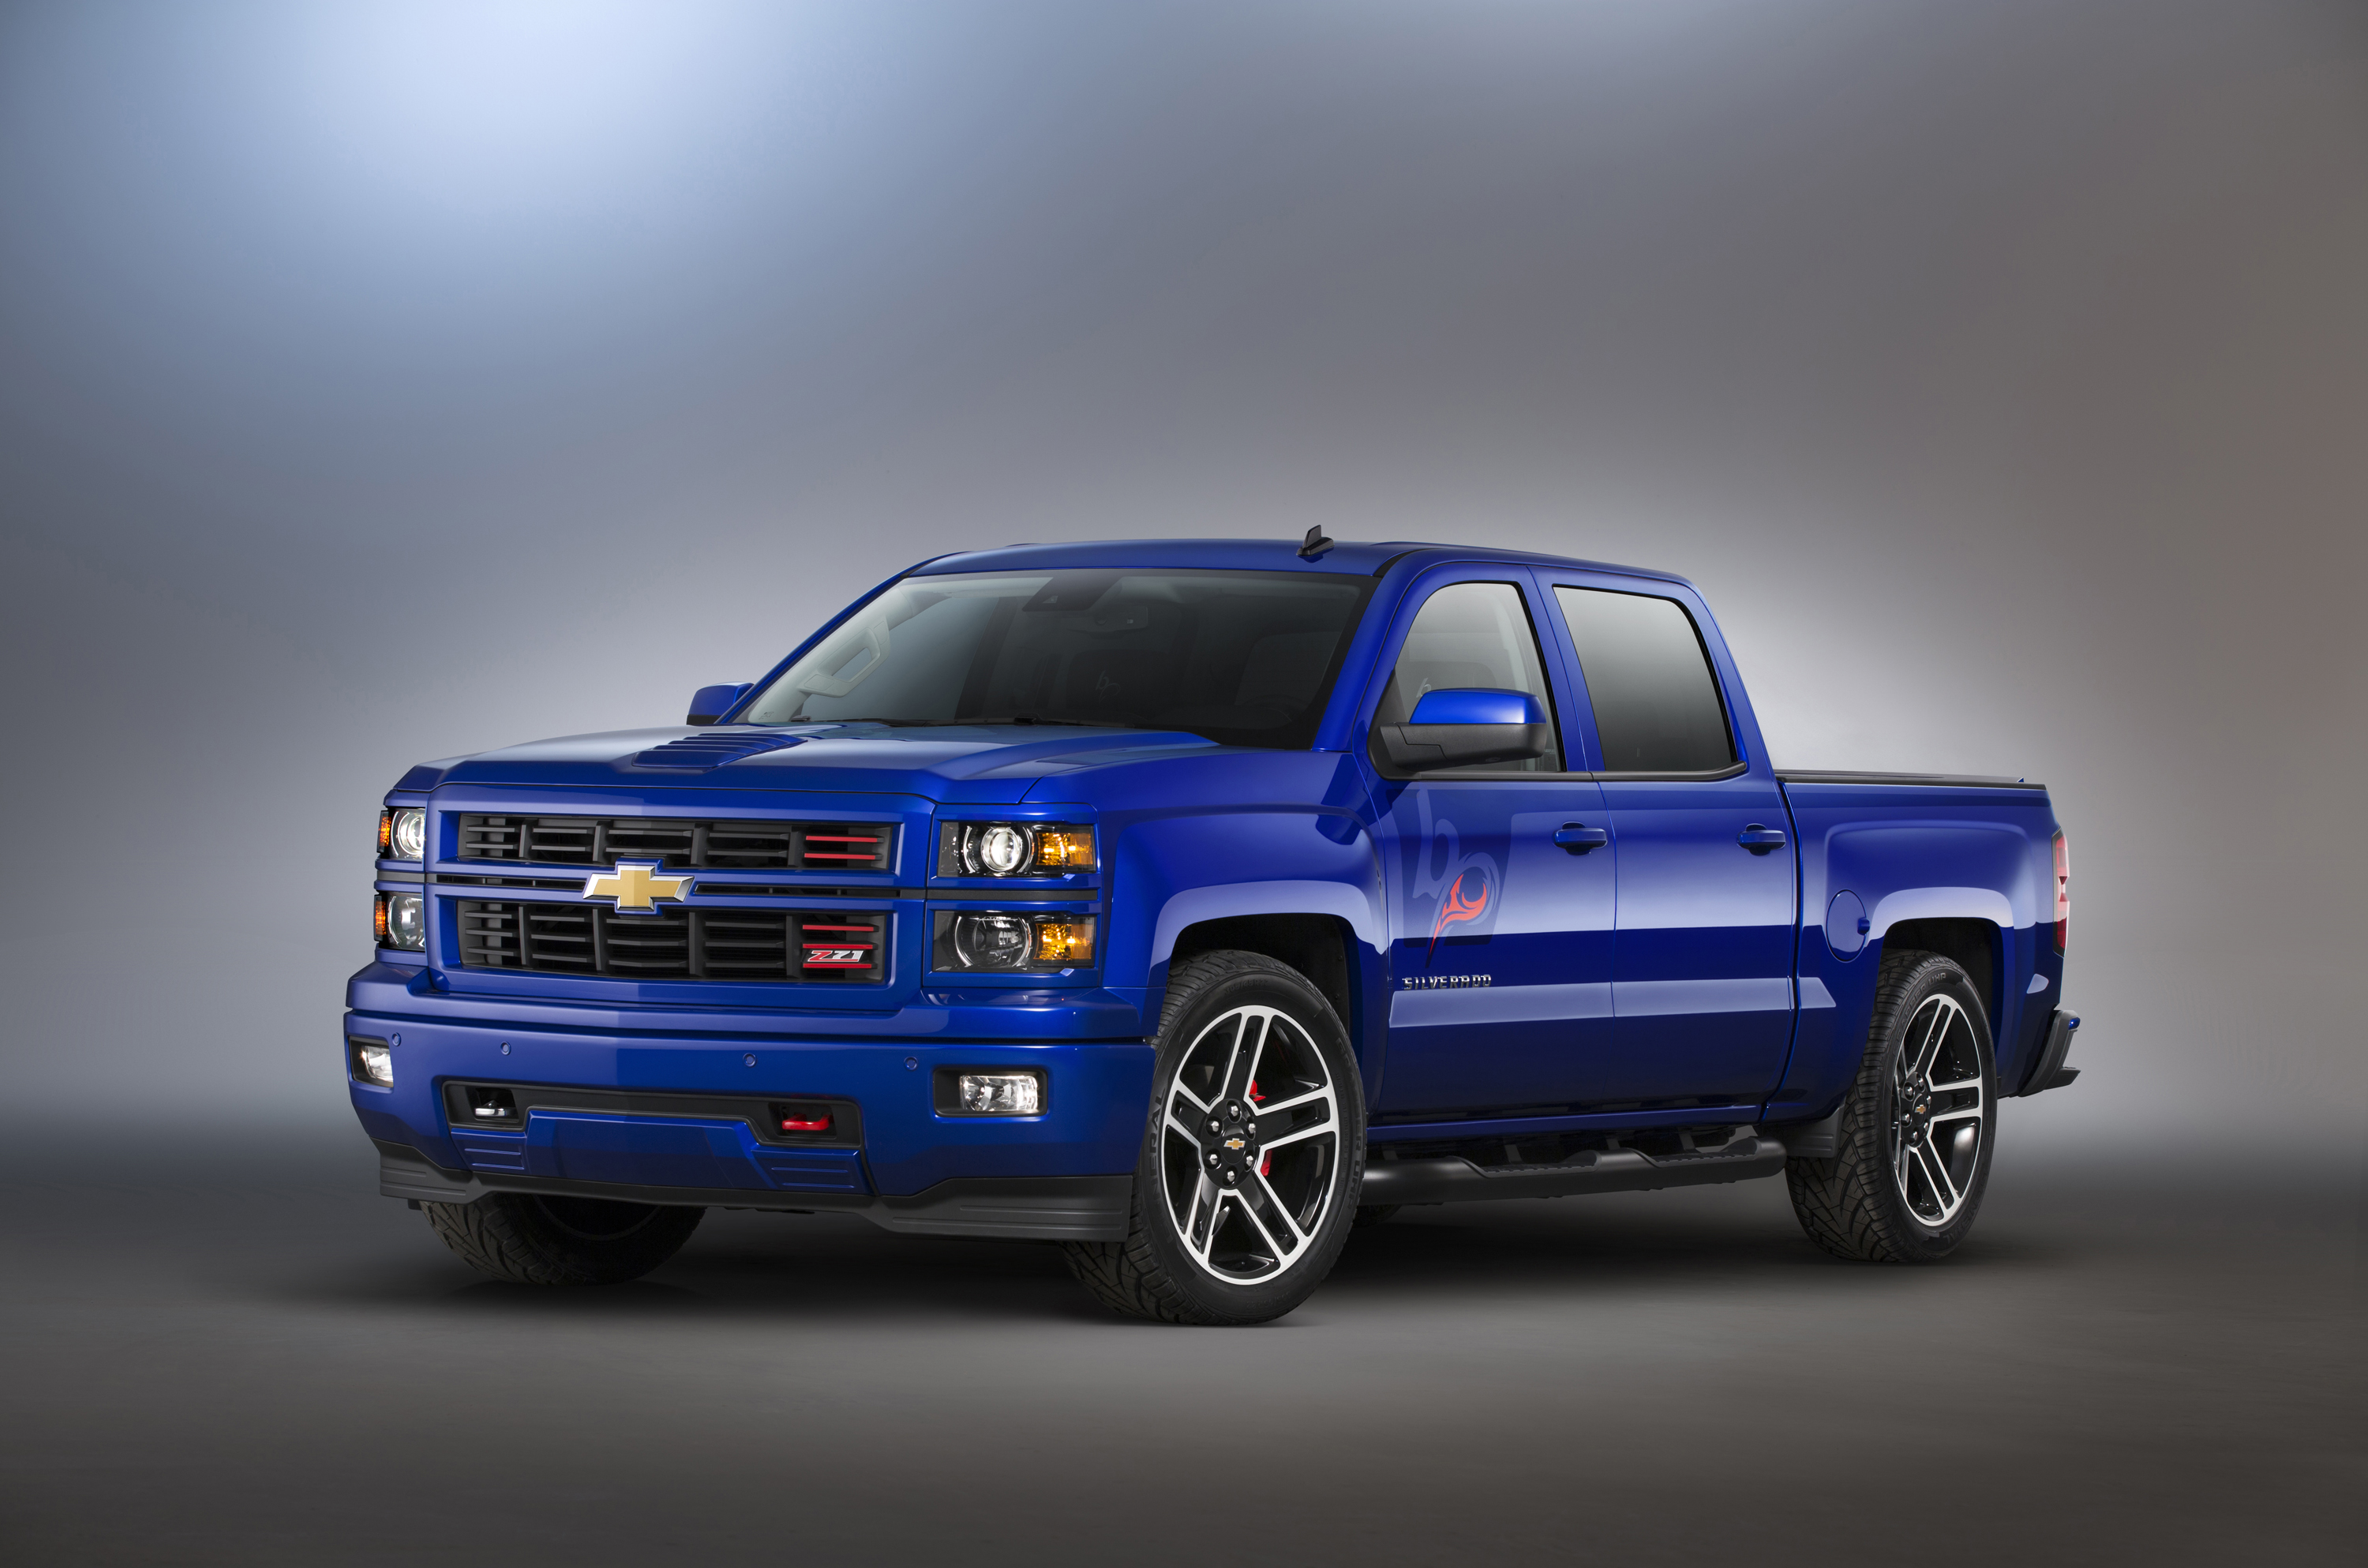 Chevrolet sema truck concepts strong on personalization